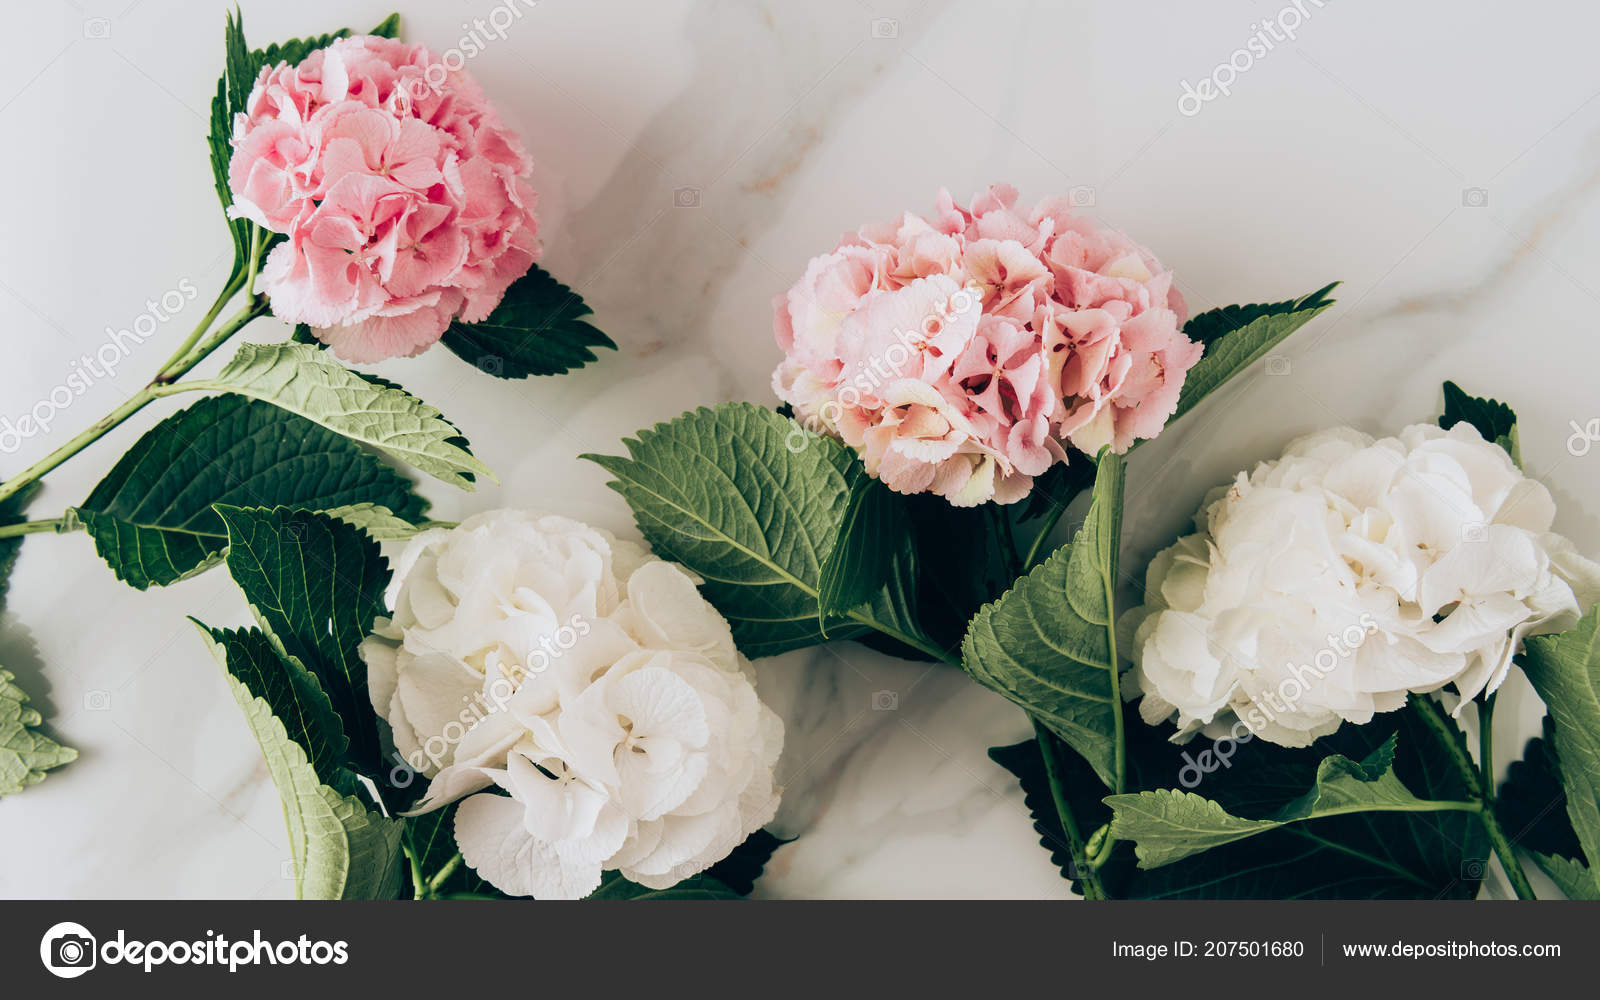 Top View Pink White Hydrangea Flowers Marble Surface Stock Photo